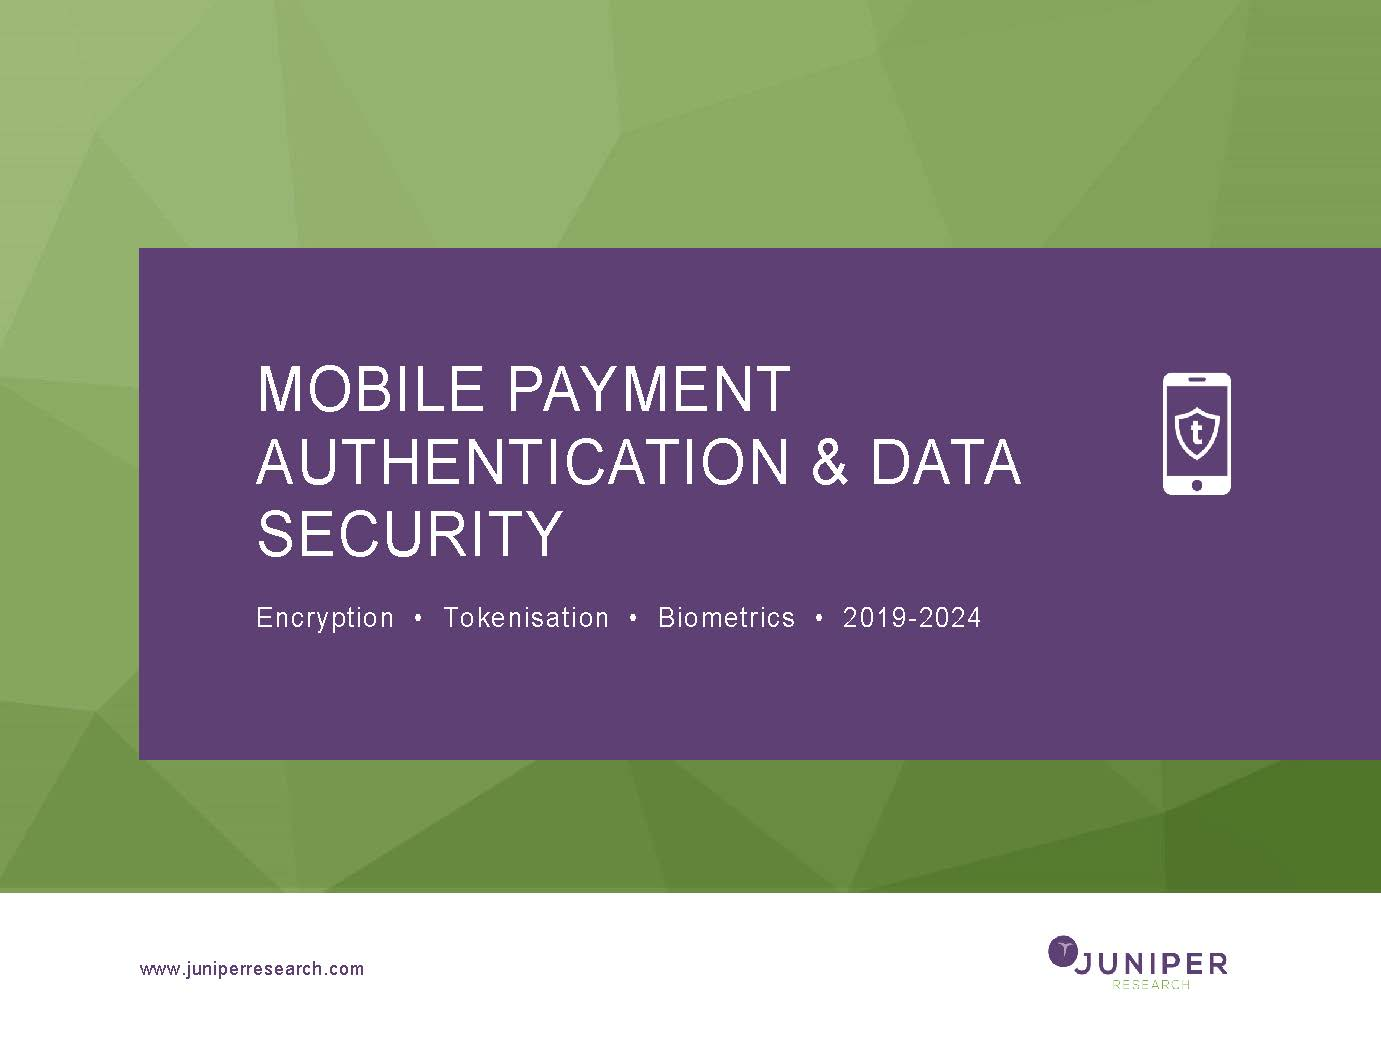 Mobile Payment Authentication & Data Security: Encryption, Tokenisation, Biometrics 2019-2024